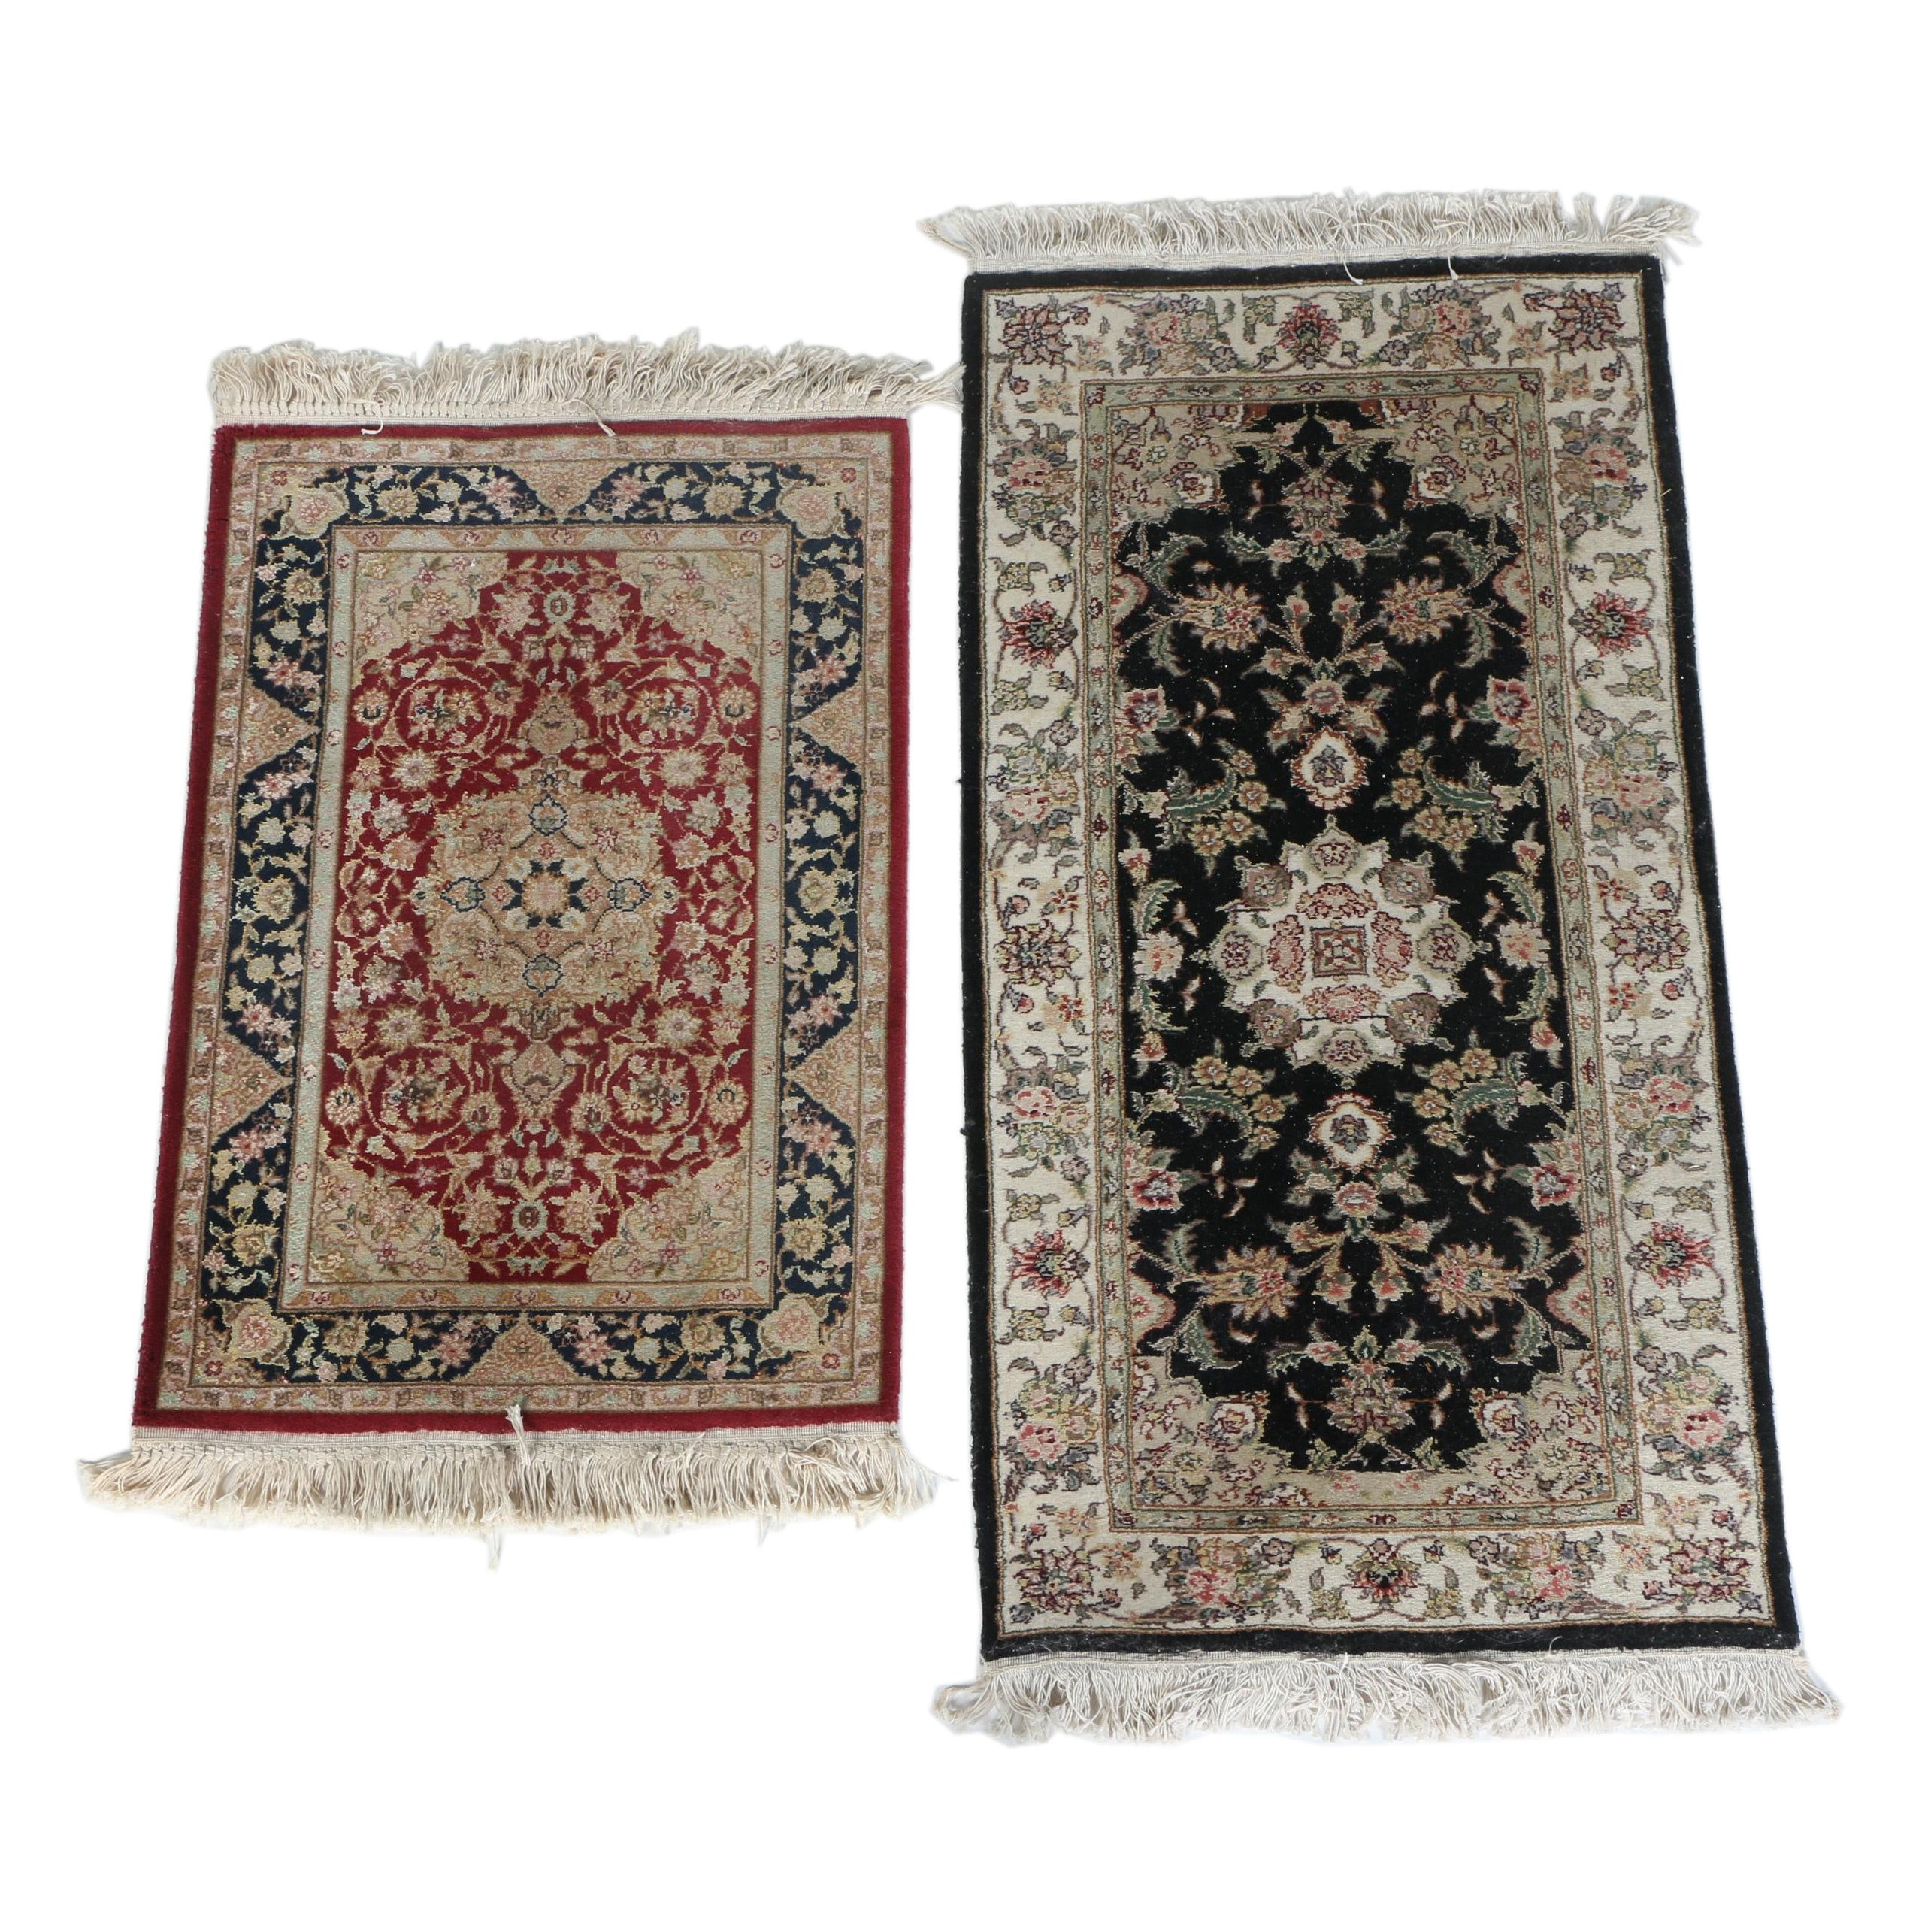 Hand-Knotted Sino-Persian Wool and Silk Accent Rugs